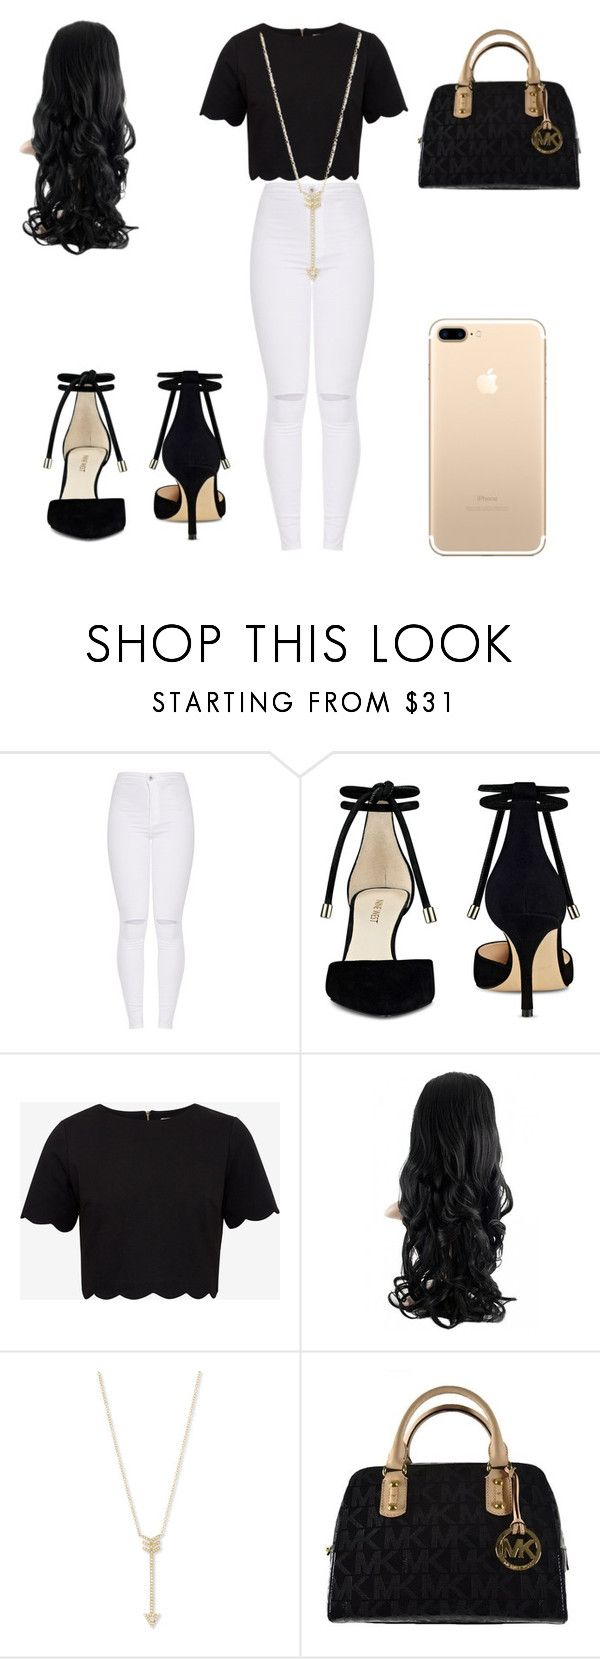 """Untitled #28"" by gilagirl ❤ liked on Polyvore featuring Nine West, Ted Baker, EF Collection and Michael Kors"